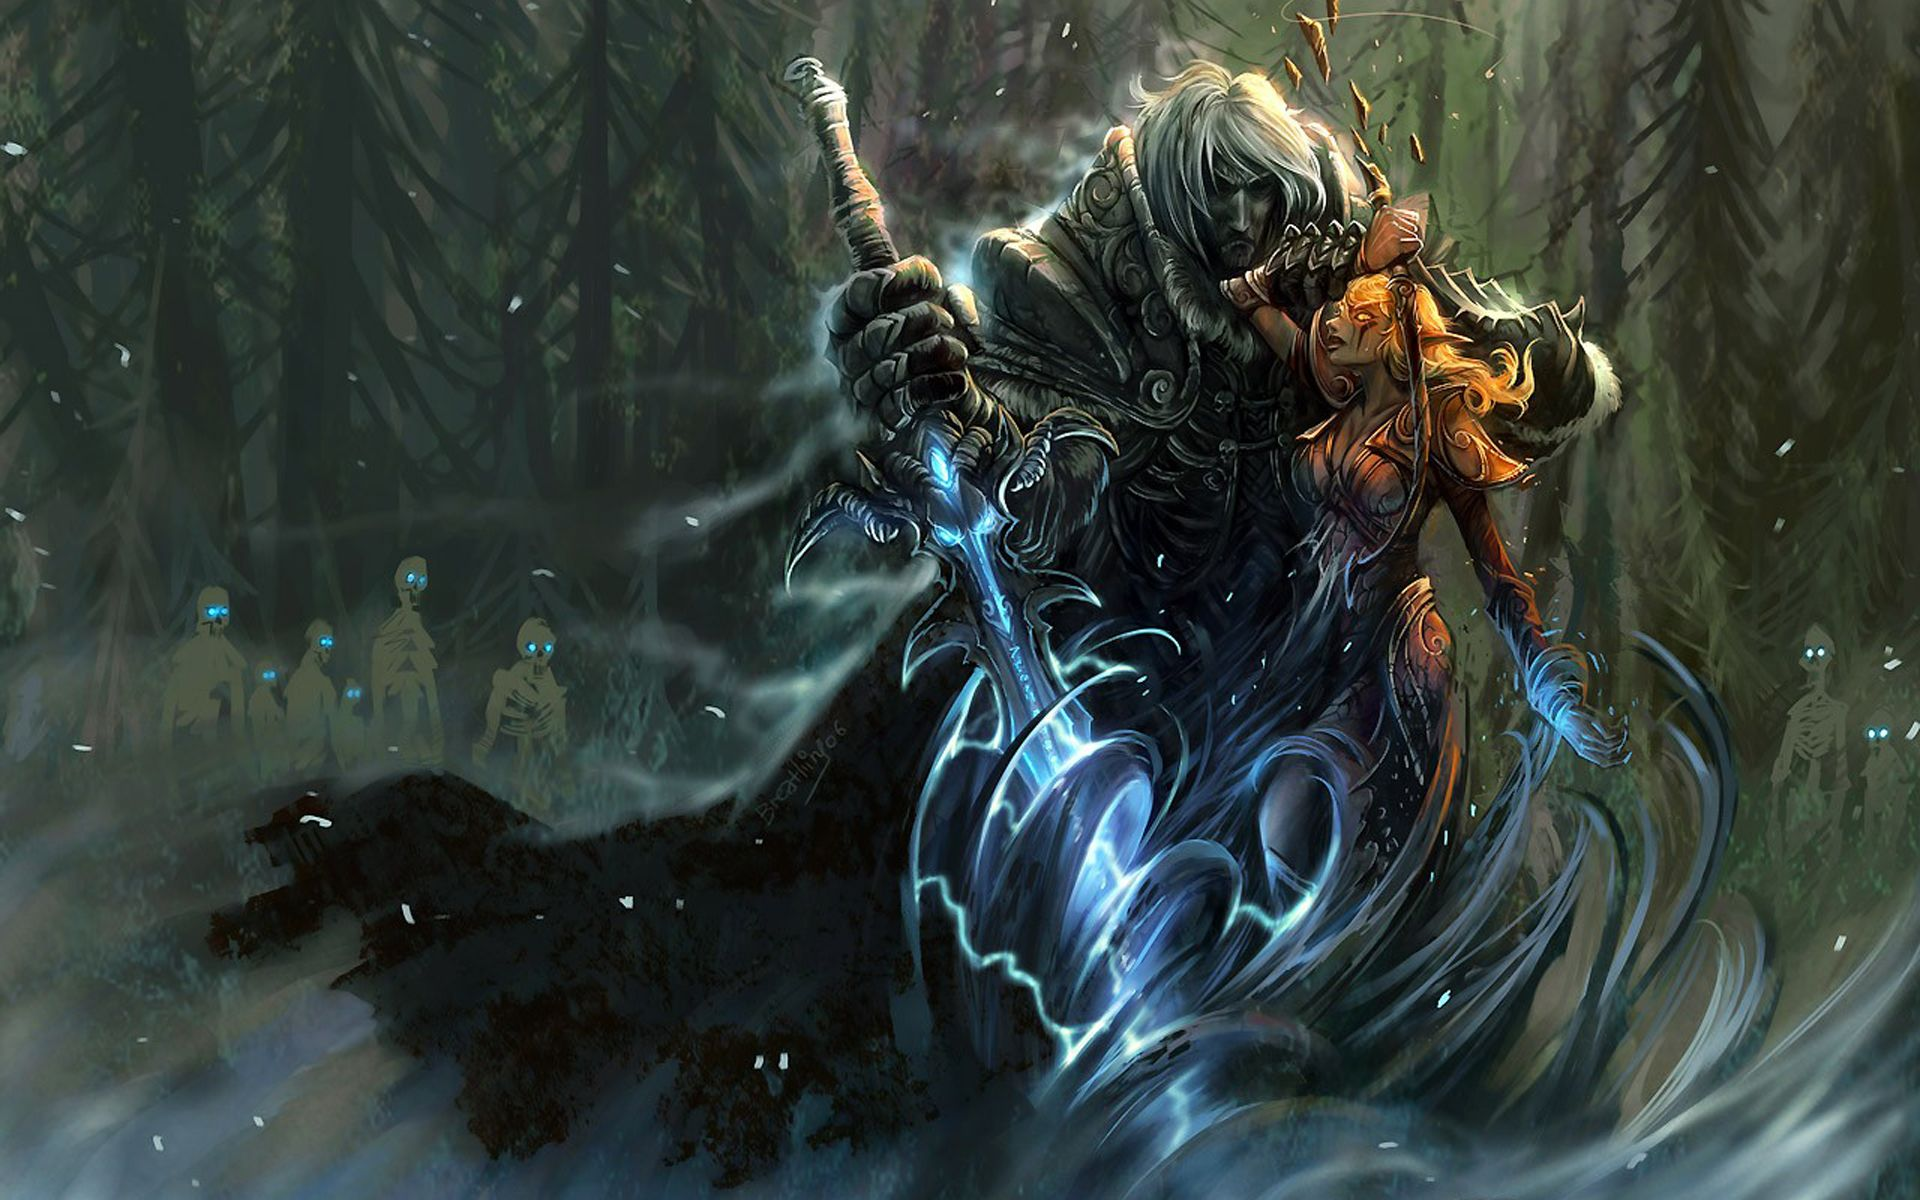 World Of Warcraft Art Game Video Wallpapers World Of Warcraft Art Game Video Stock Photos